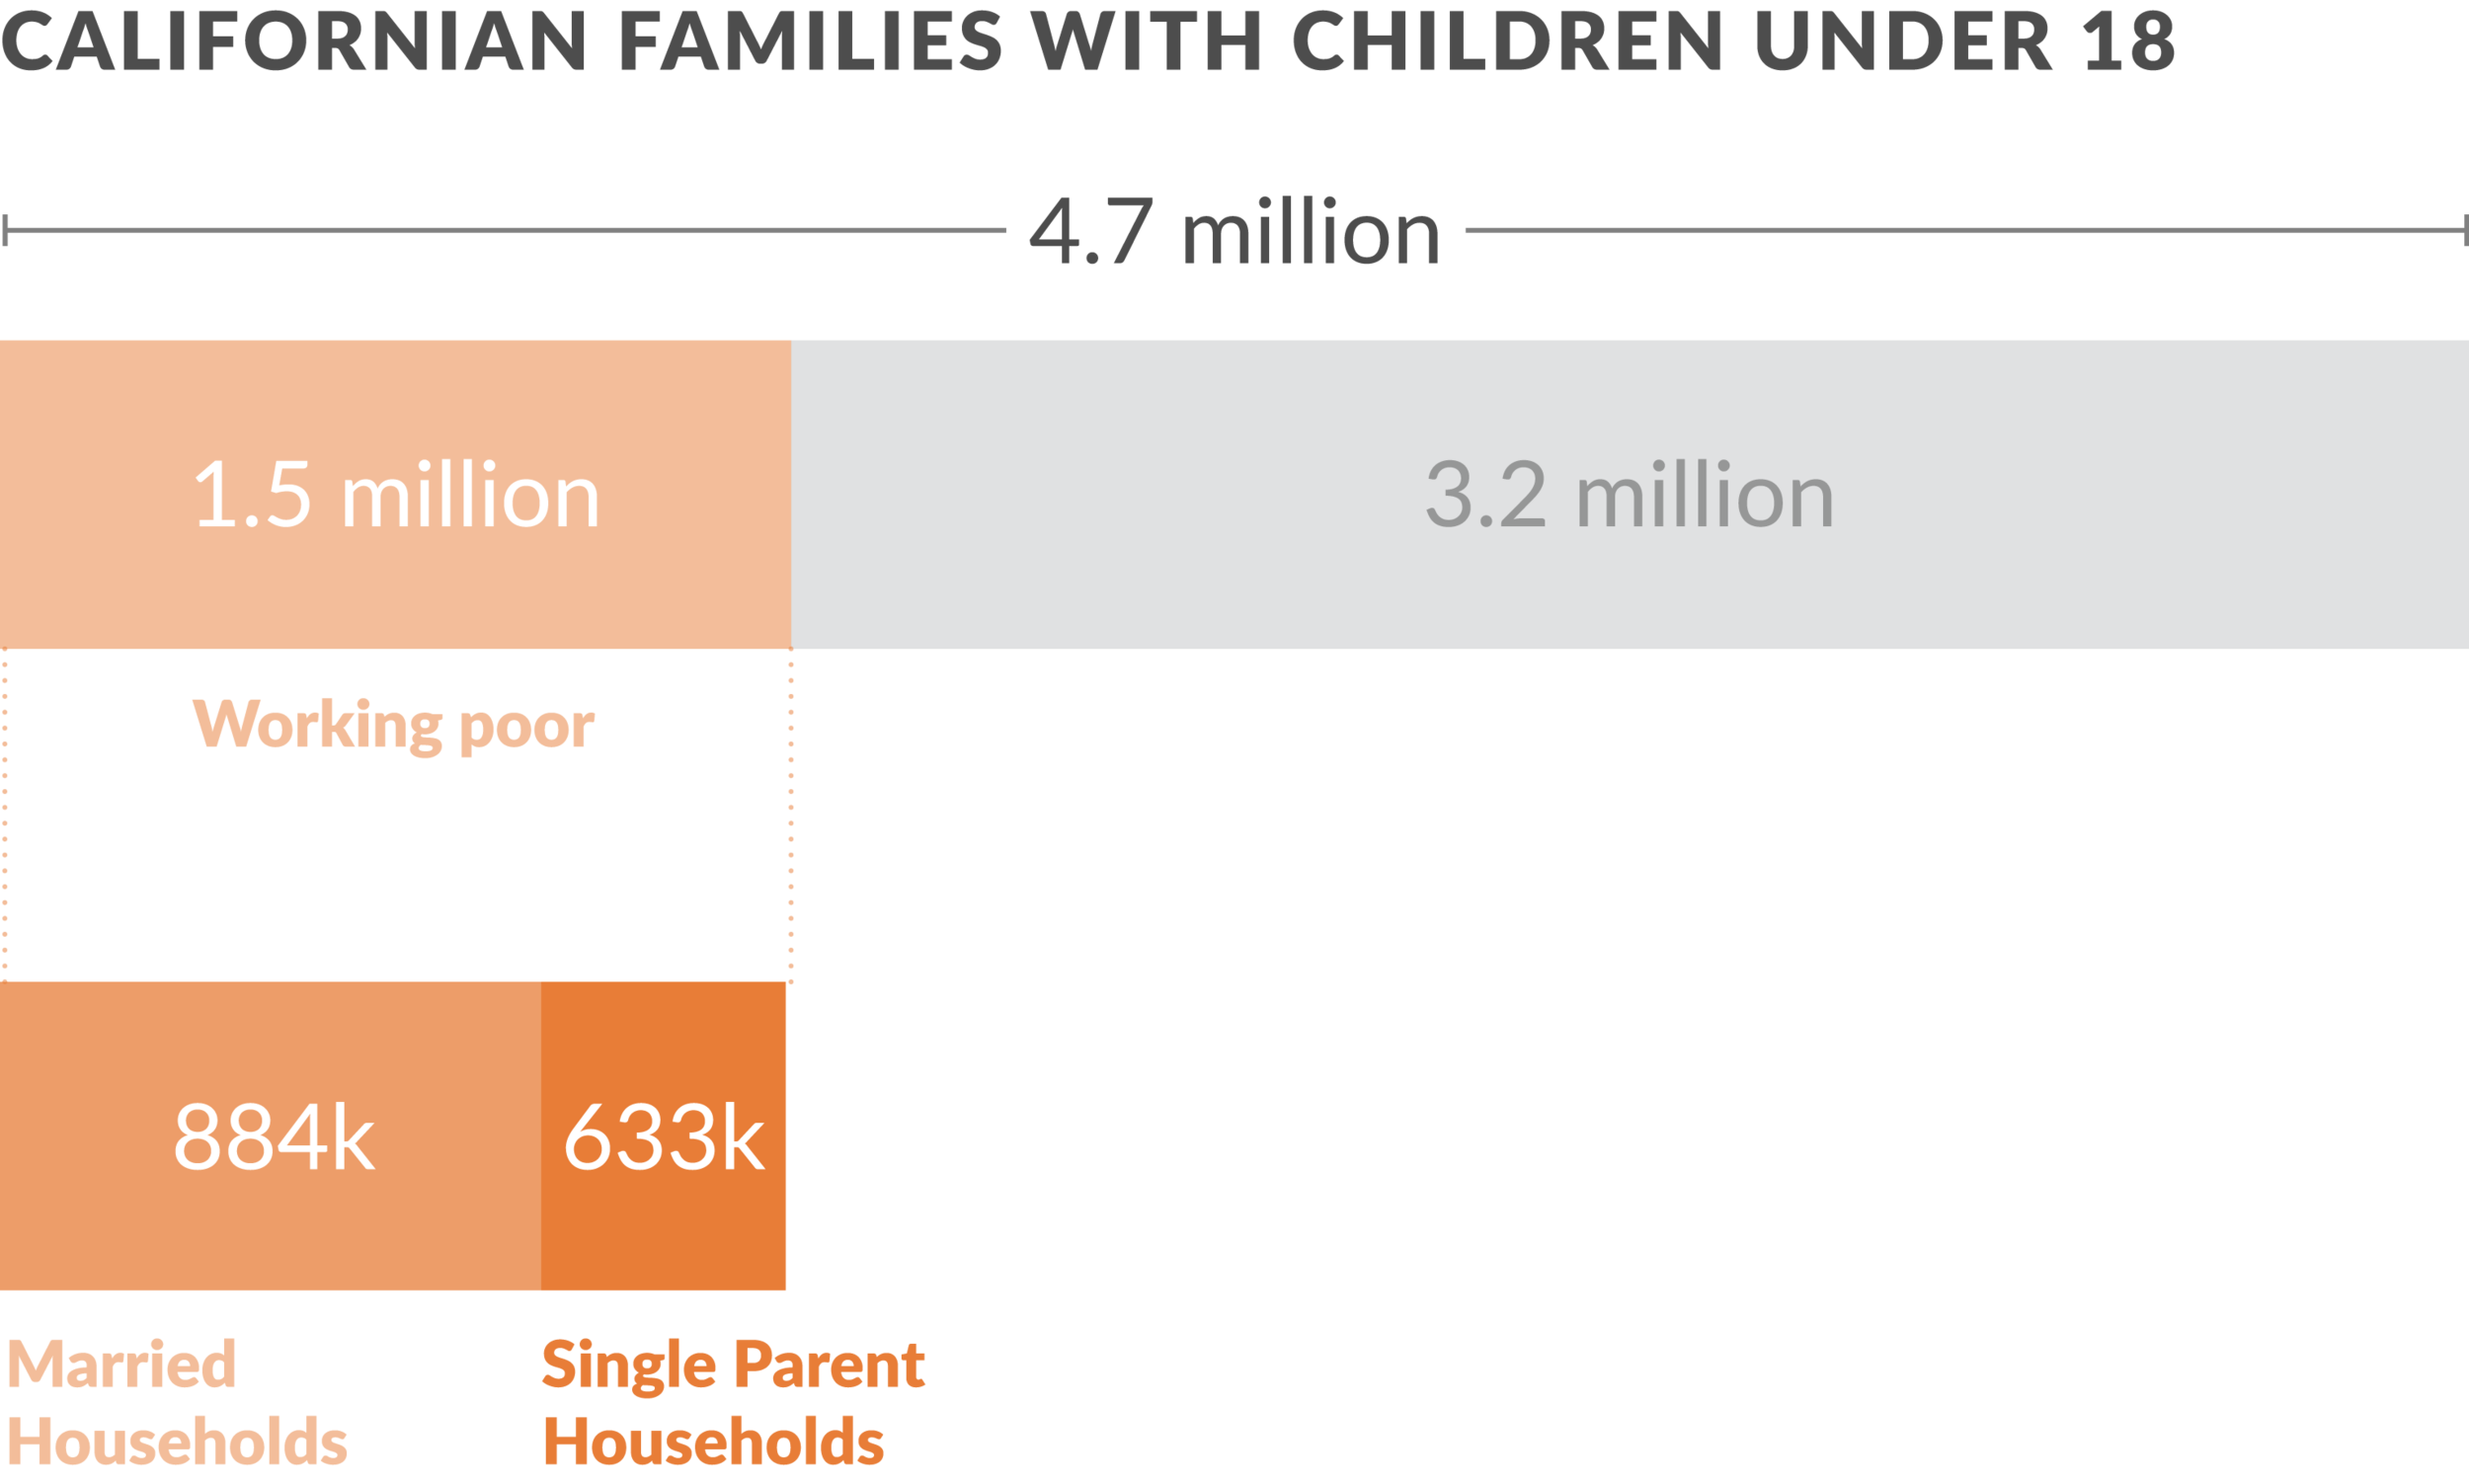 There are 1.5 million working poor families in California. Source:  2014 Current Population Survey, U.S. Census Bureau